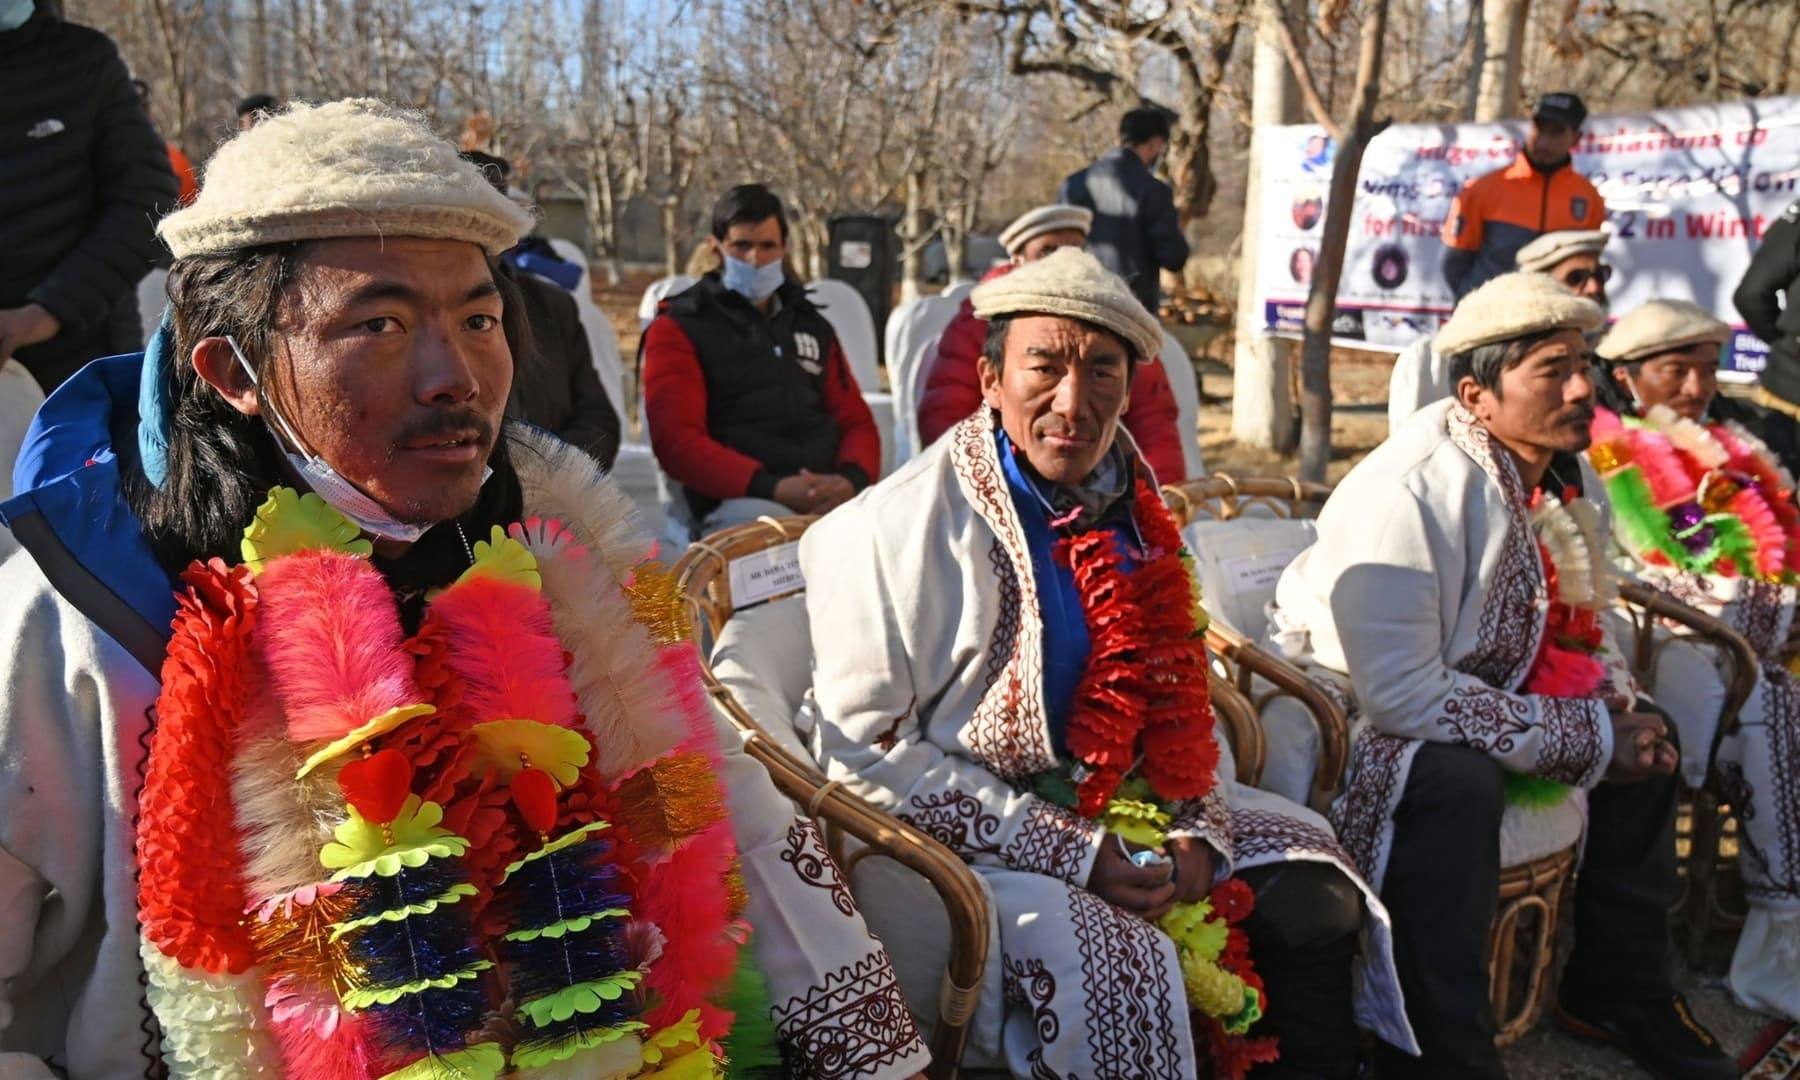 Nepal's climber Mingma Sherpa (L) attends a welcome ceremony with teammates upon their arrival after becoming the first to summit Pakistan's K2 in winter, at Shigar district in Gilgit-Baltistan, Jan 20, 2021. — AFP